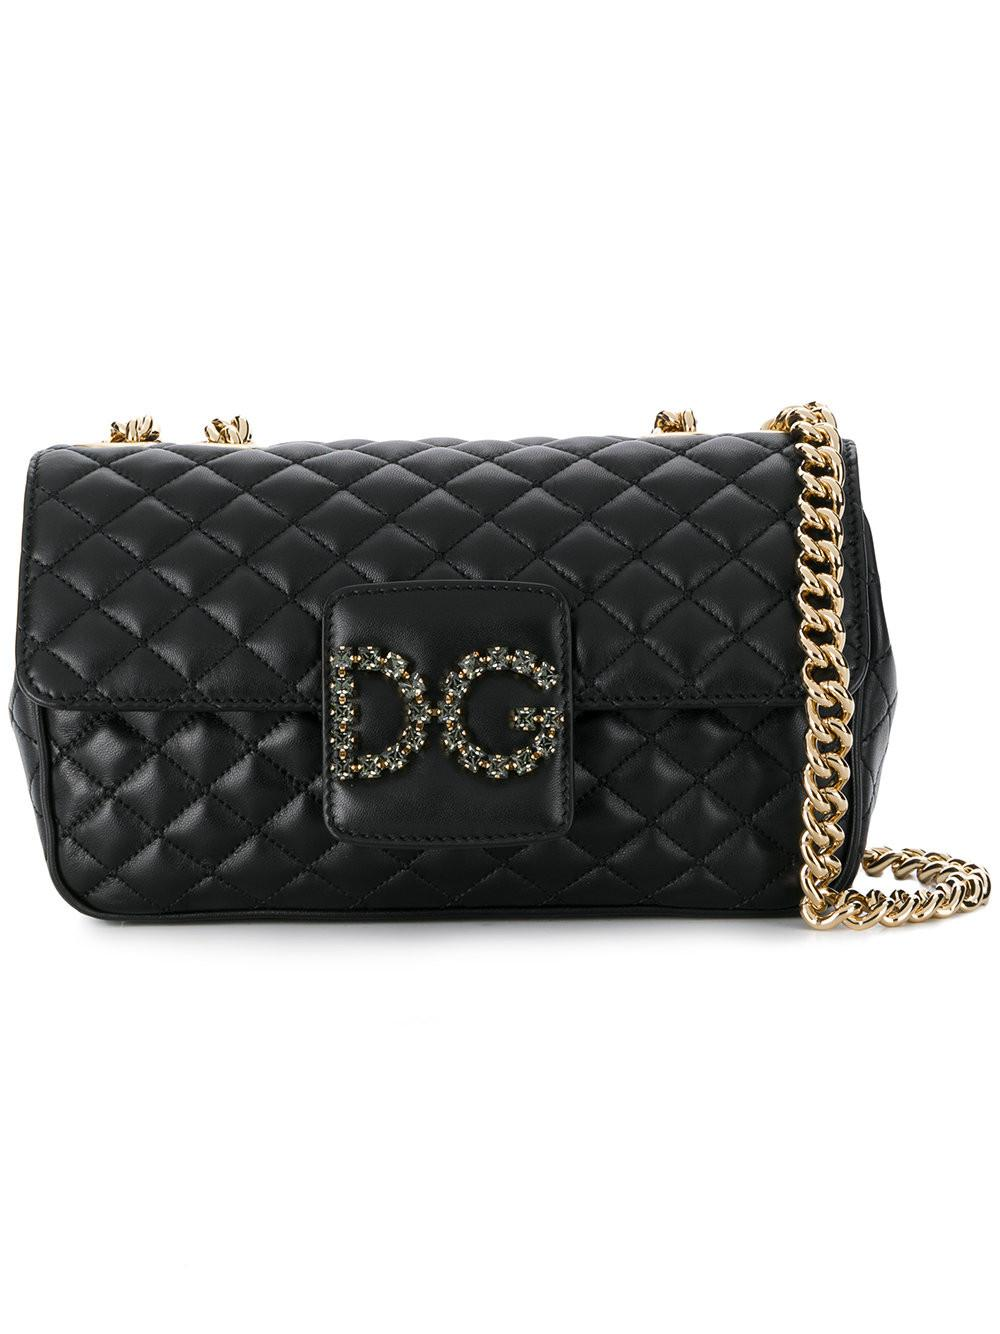 58a181585a4a Lyst - Dolce   Gabbana Quilted Logo Shoulder Bag in Black - Save ...